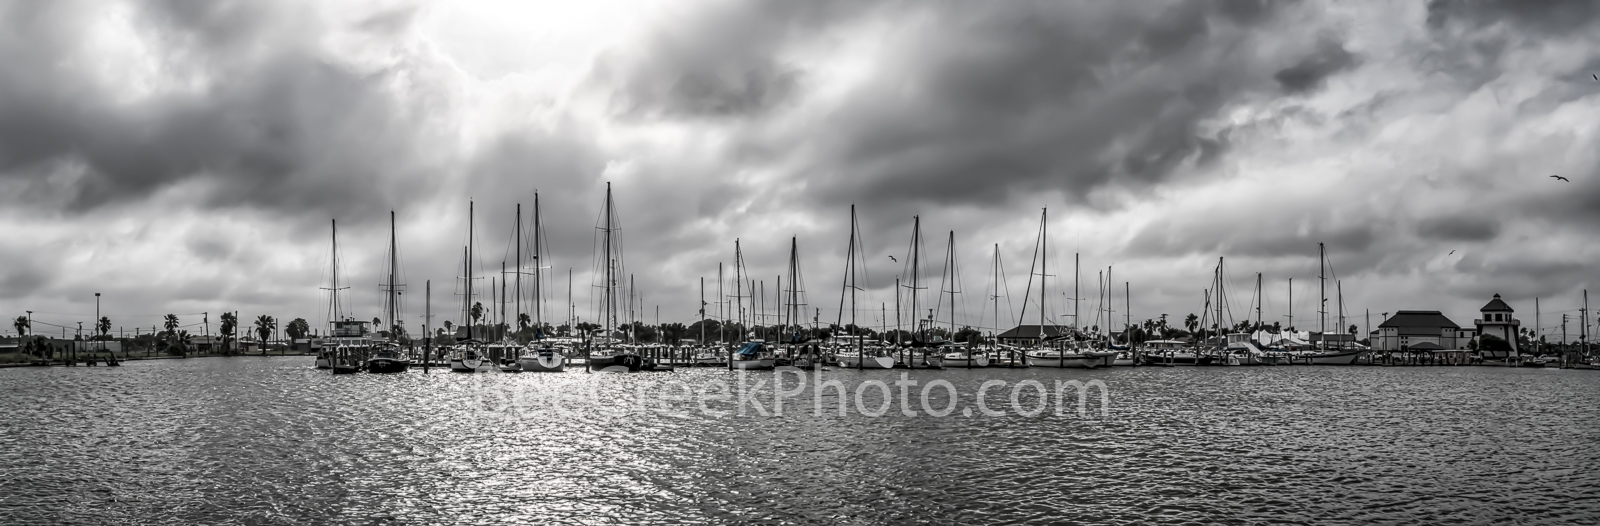 rockport marina b w, panorama, pano, black and white, rockport, texas, coast, coastal, hurrican harvey, fish, boats, clouds, sun, filter, sailboats, sailboat mast, mast, fishing boats, seascape, seasc, photo